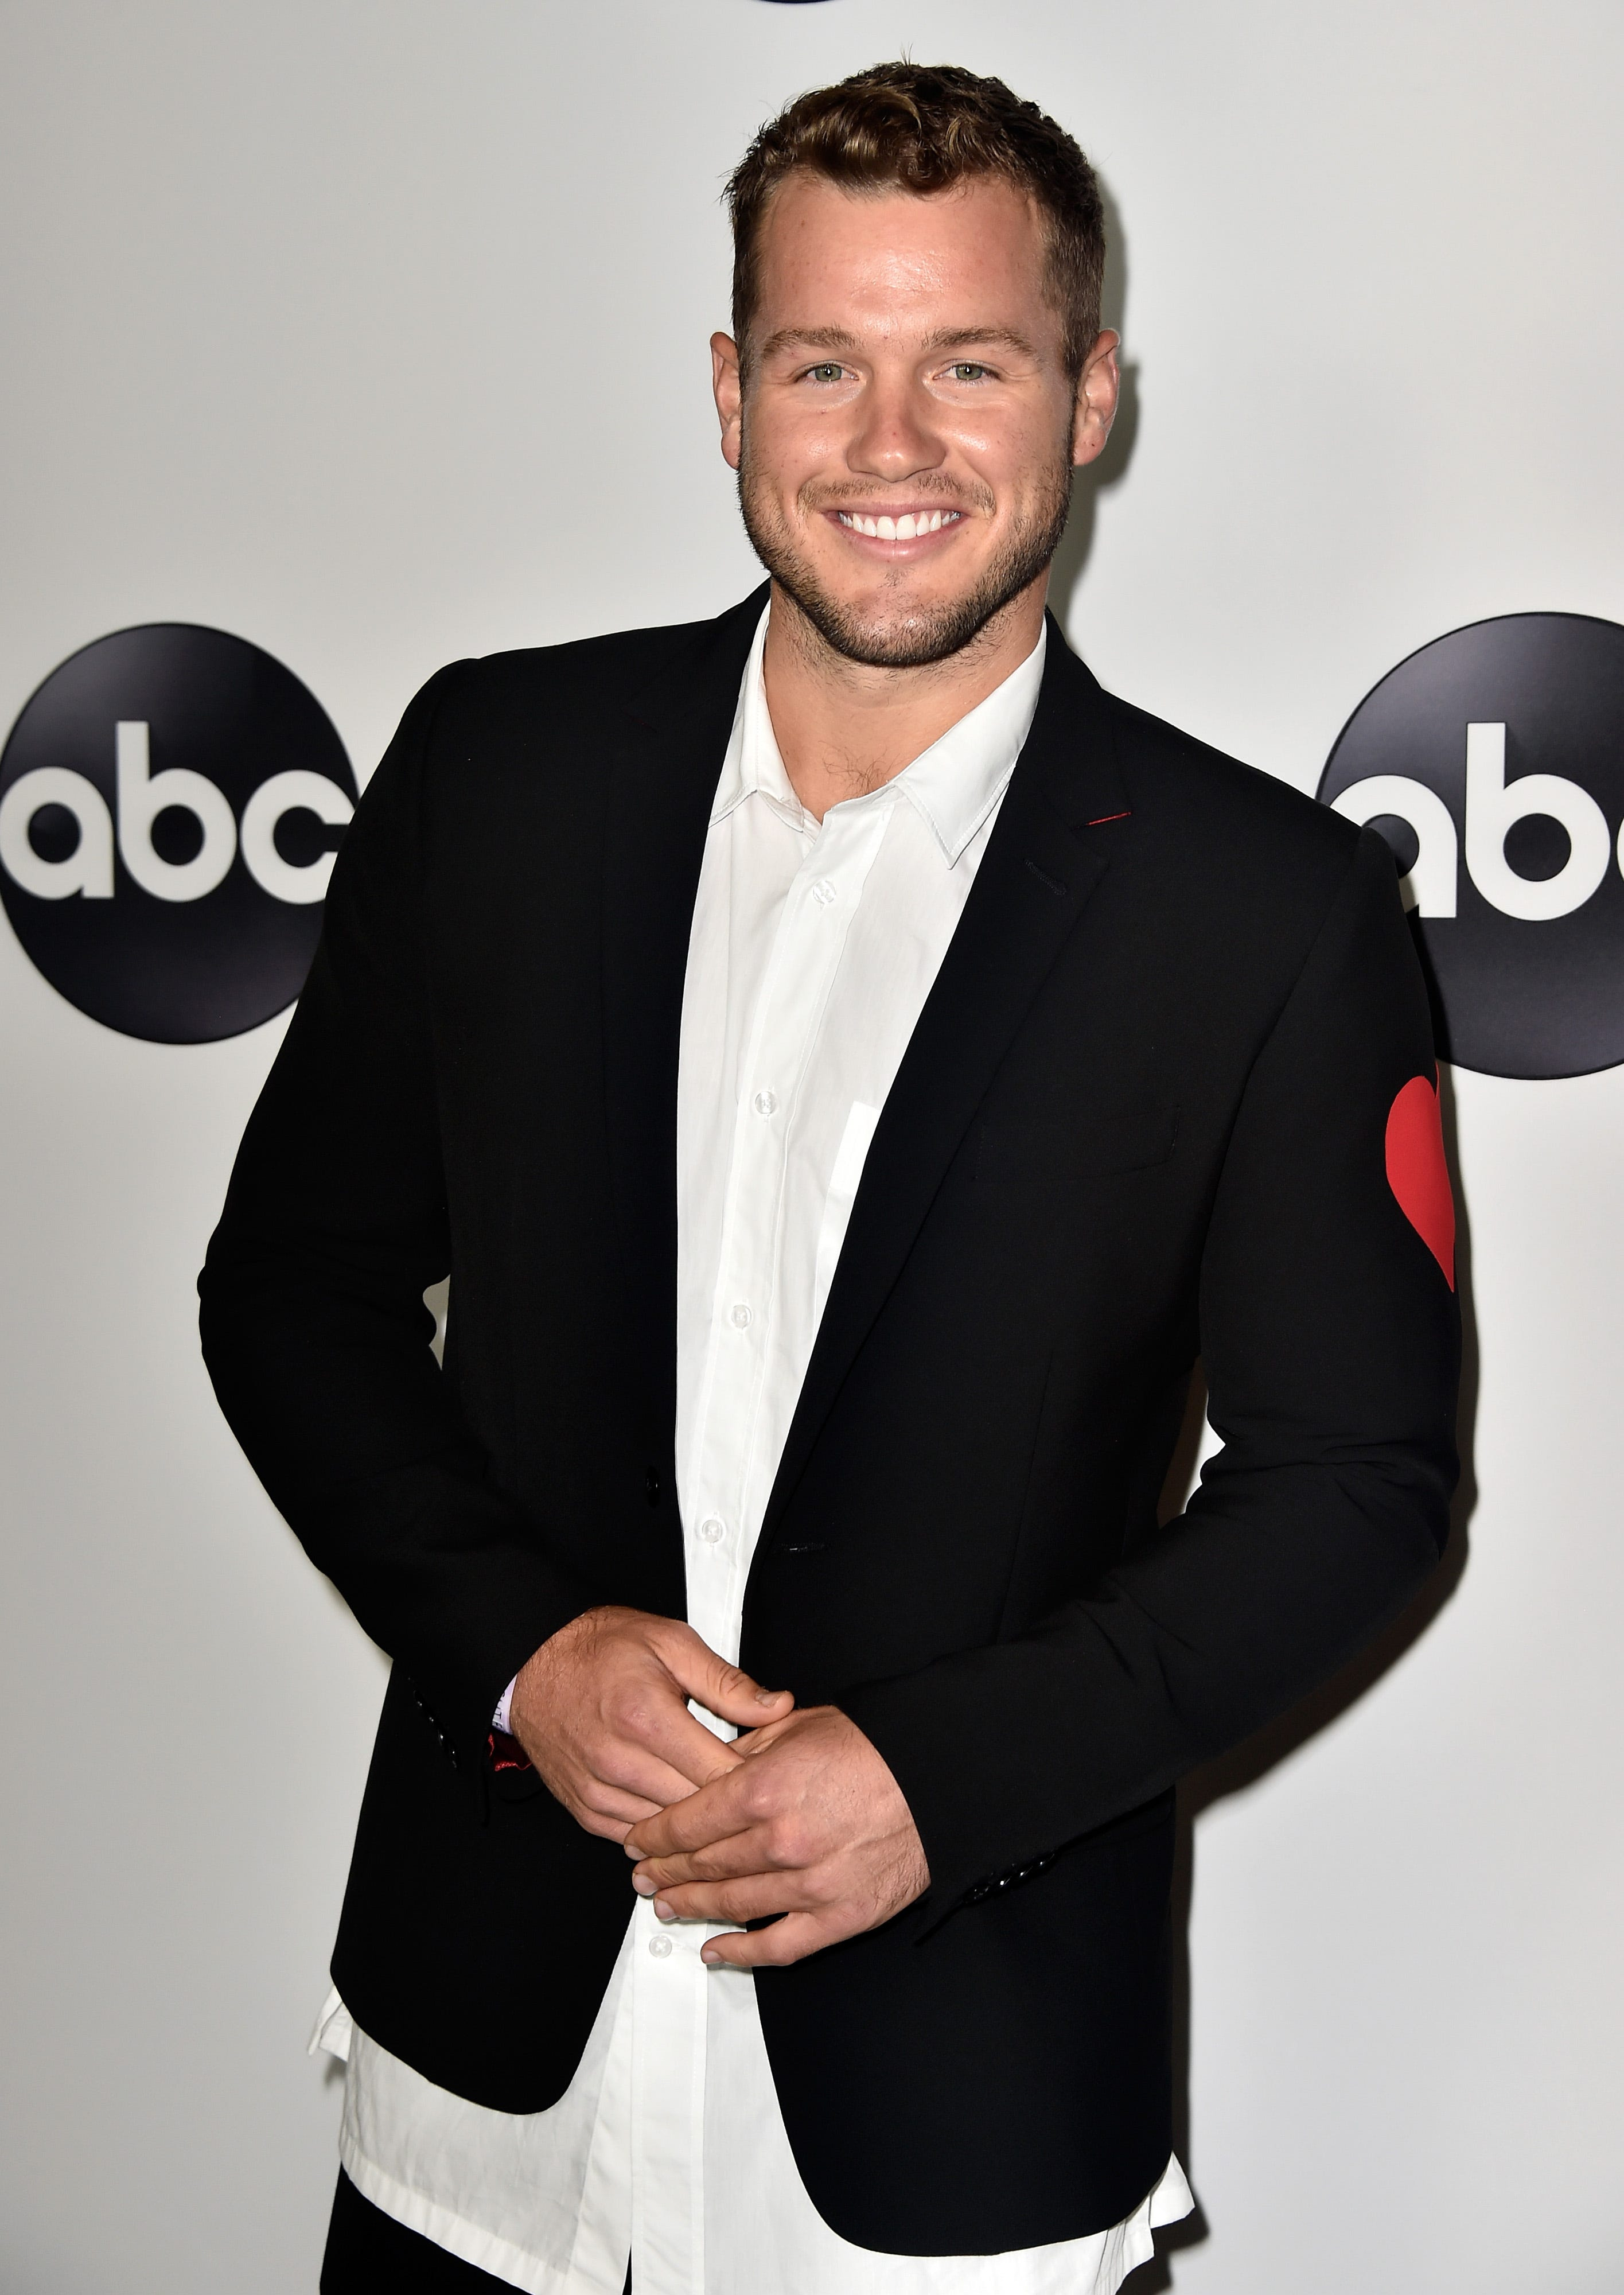 Out LGBTQ celebs: Colton Underwood, JoJo Siwa, Elliot Page, Lil Nas X and more